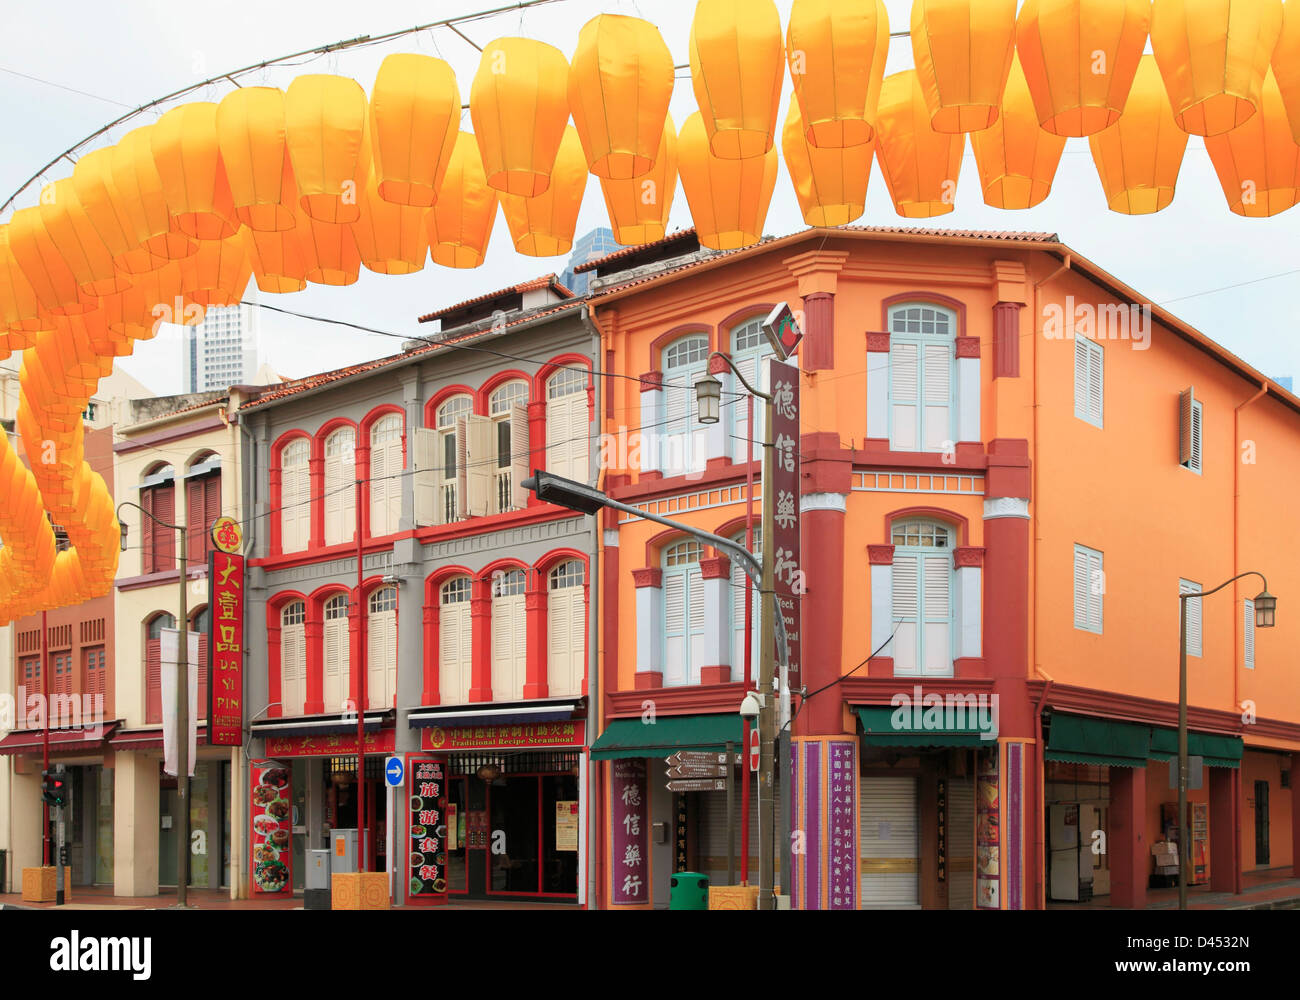 Singapore, Chinatown, shophouses, street scene, typical architecture, - Stock Image